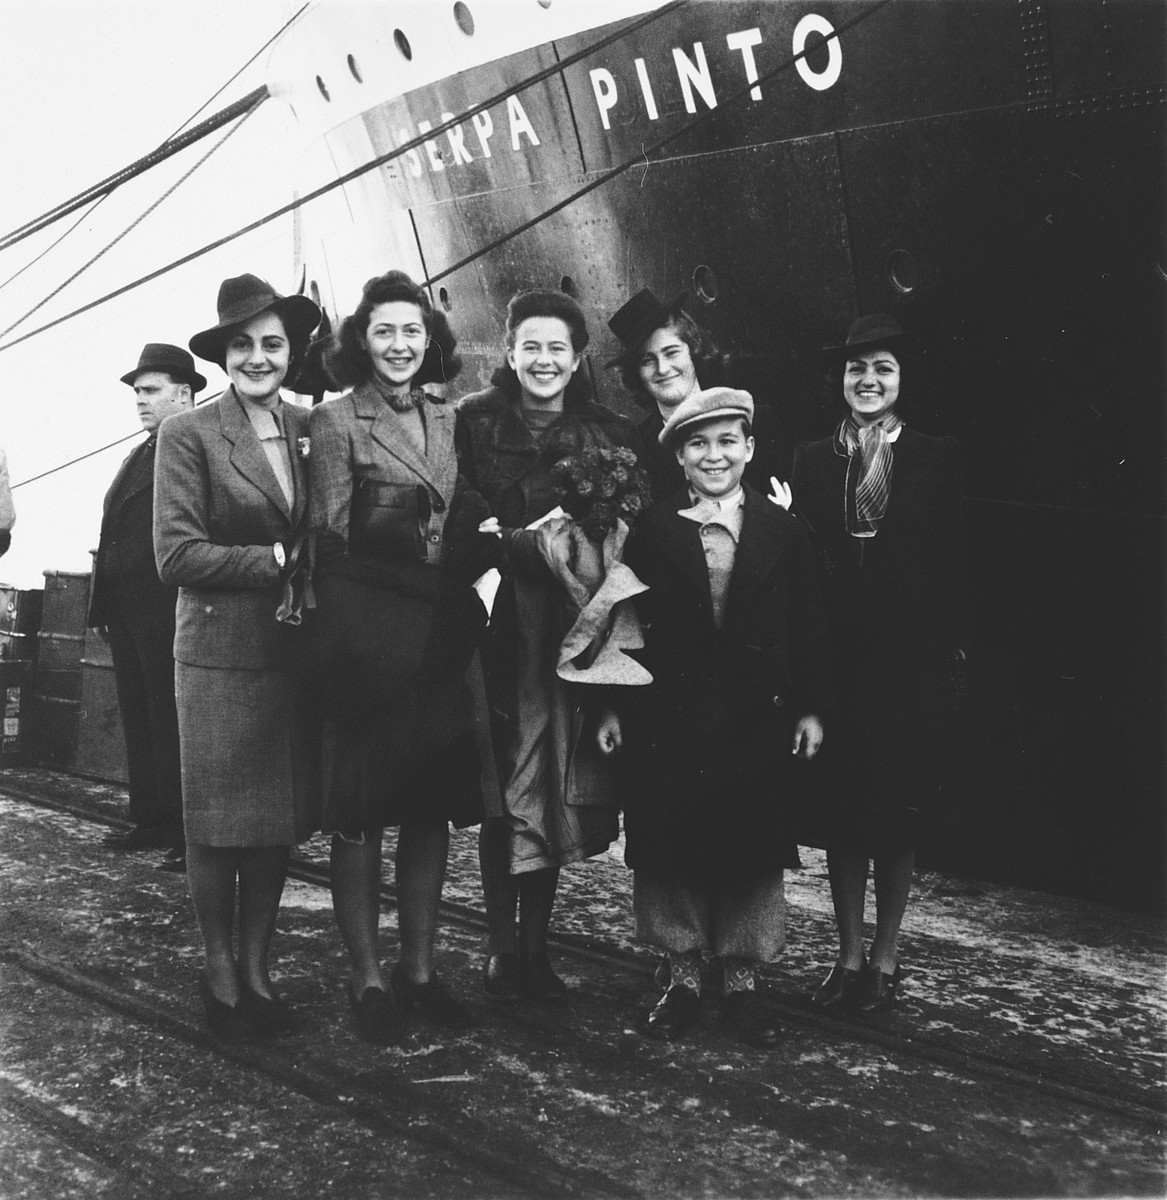 A group of Jewish refugees pose on the pier in the port of Lisbon before boarding the SS Serpa Pinto.   Among those pictured is Madeleine Hecht Feher, center holding a bouquet of flowers, surrounded by her co-workers from the American Joint Distribtuion Committee.  They came to wish her farewell before embarking.  Also pictured is her brother, Thomas Hecht, the young boy in front.   Pictured on the far left is Lolita Goldstein, a JDC worker.